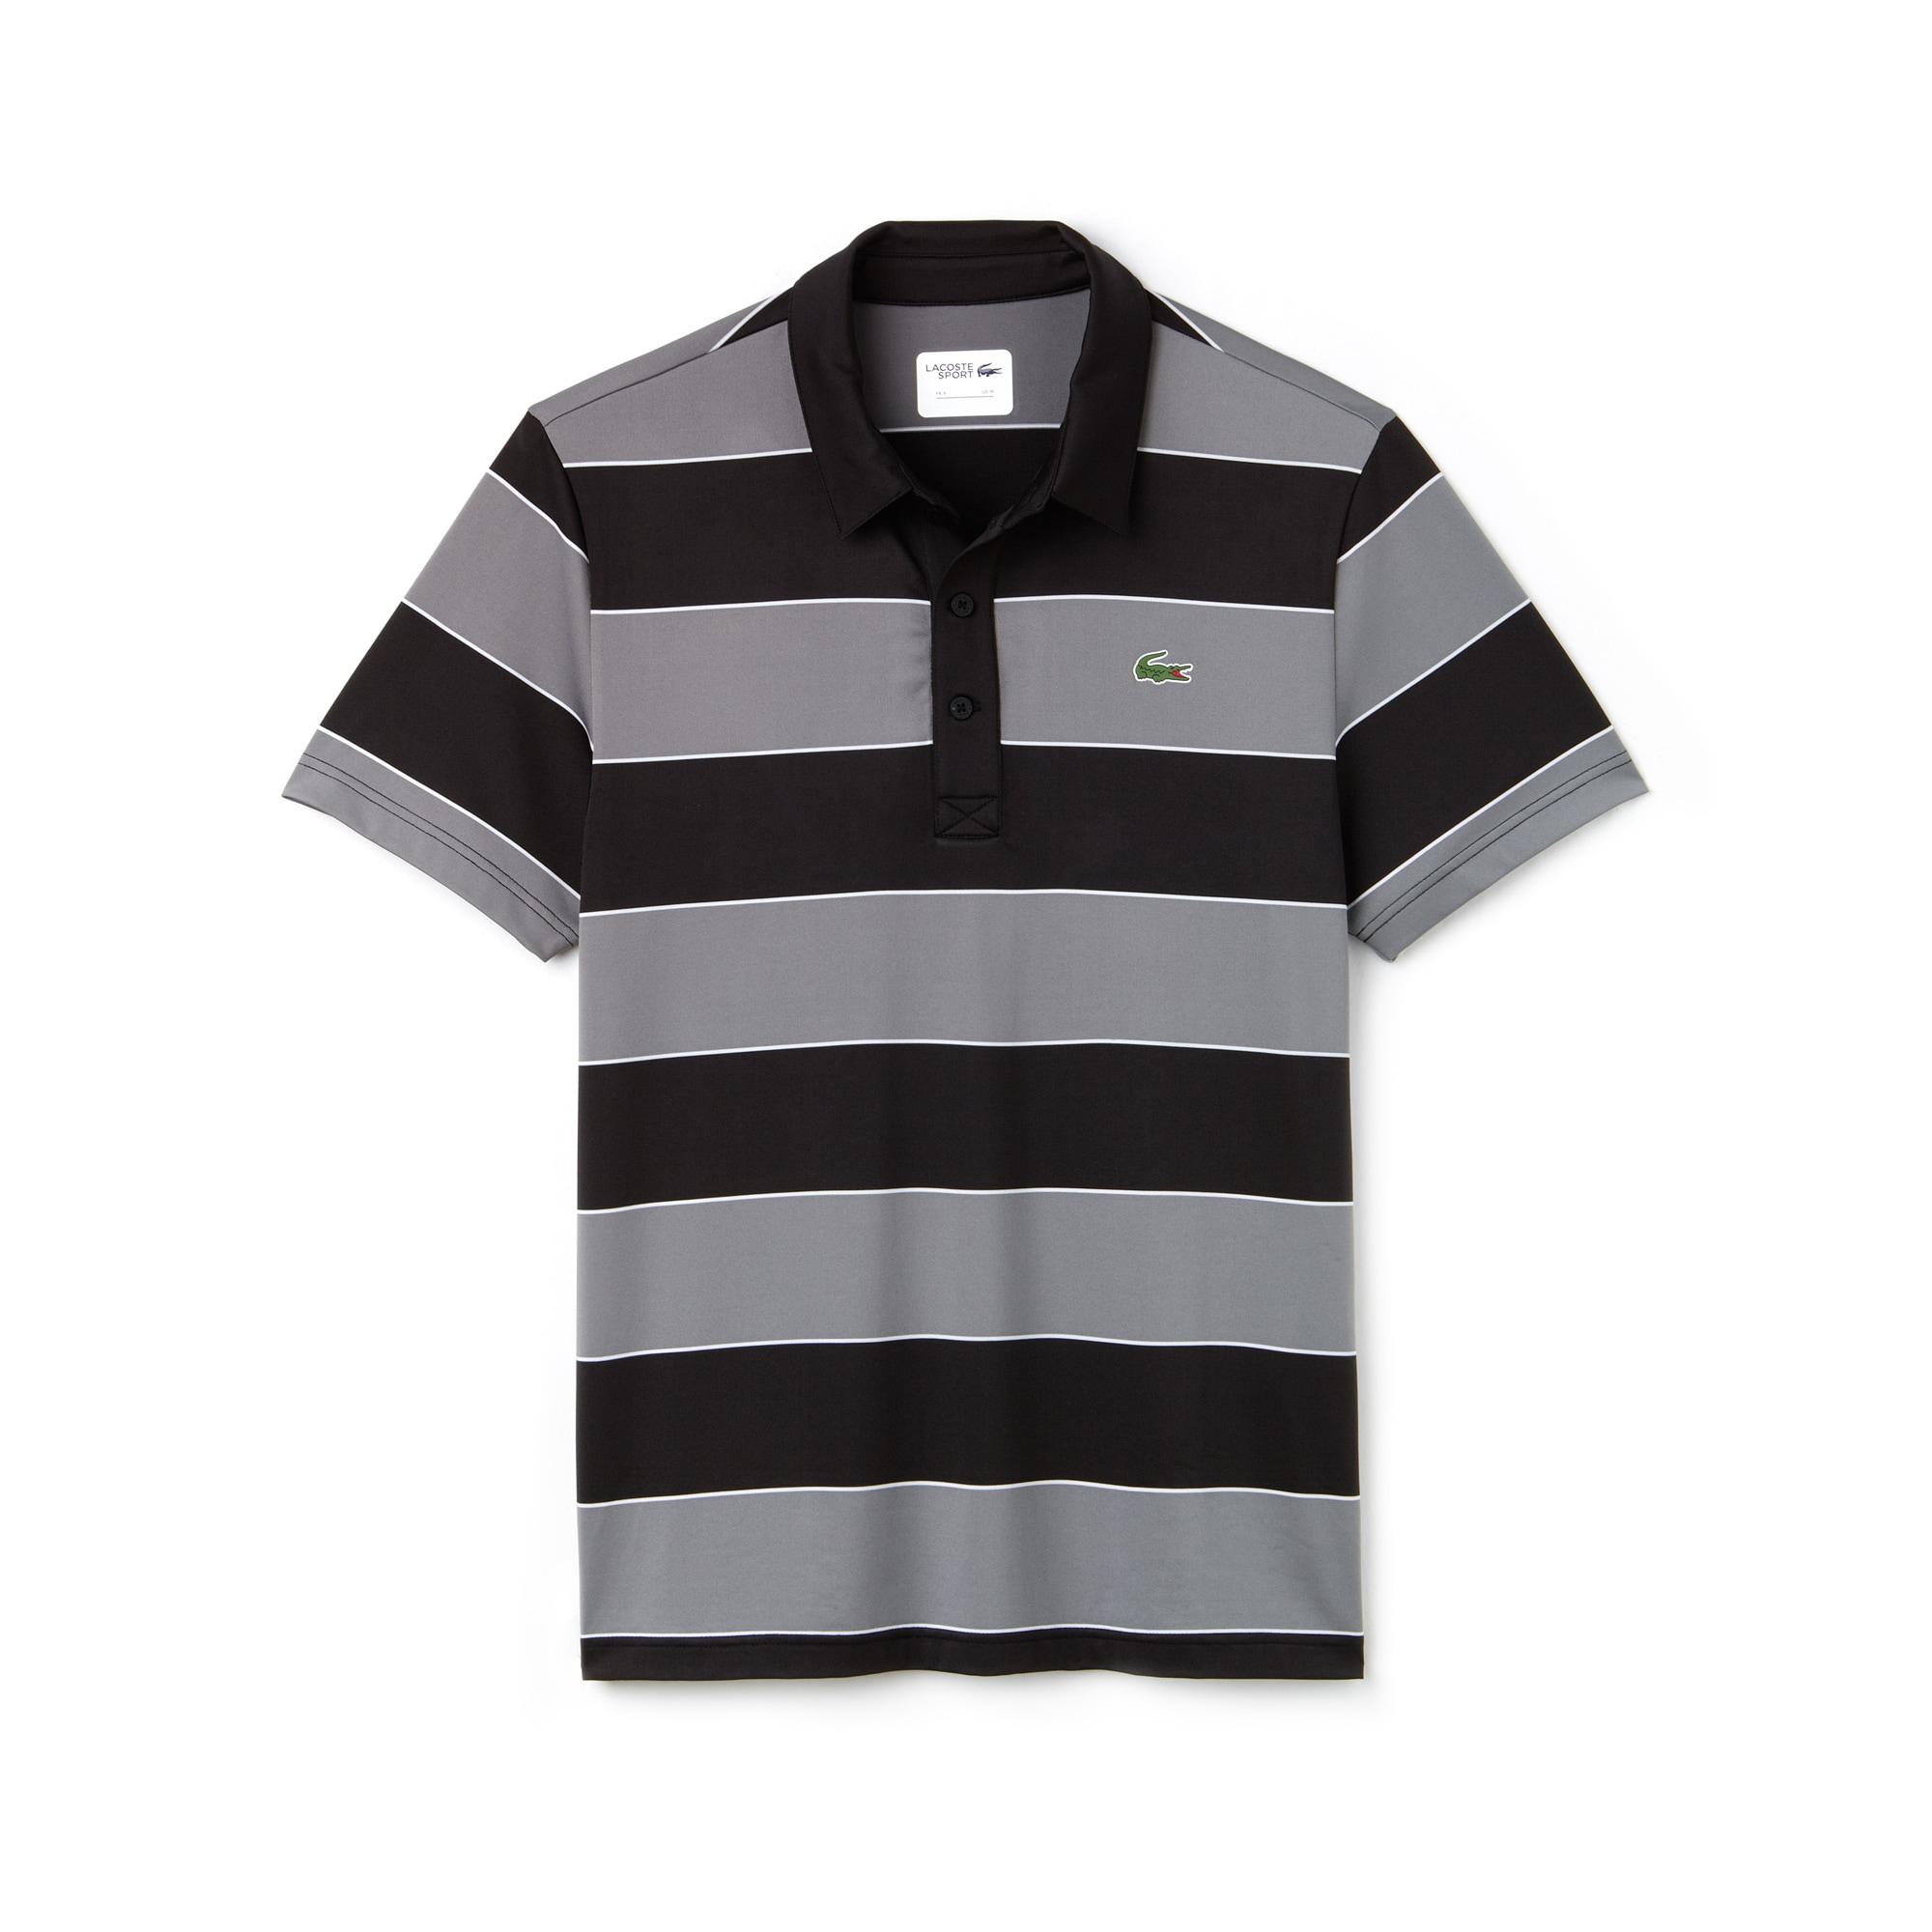 라코스테 스포츠 반팔 카라티 Lacoste Mens SPORT Striped Stretch Jersey Golf Polo,black/lead grey-white